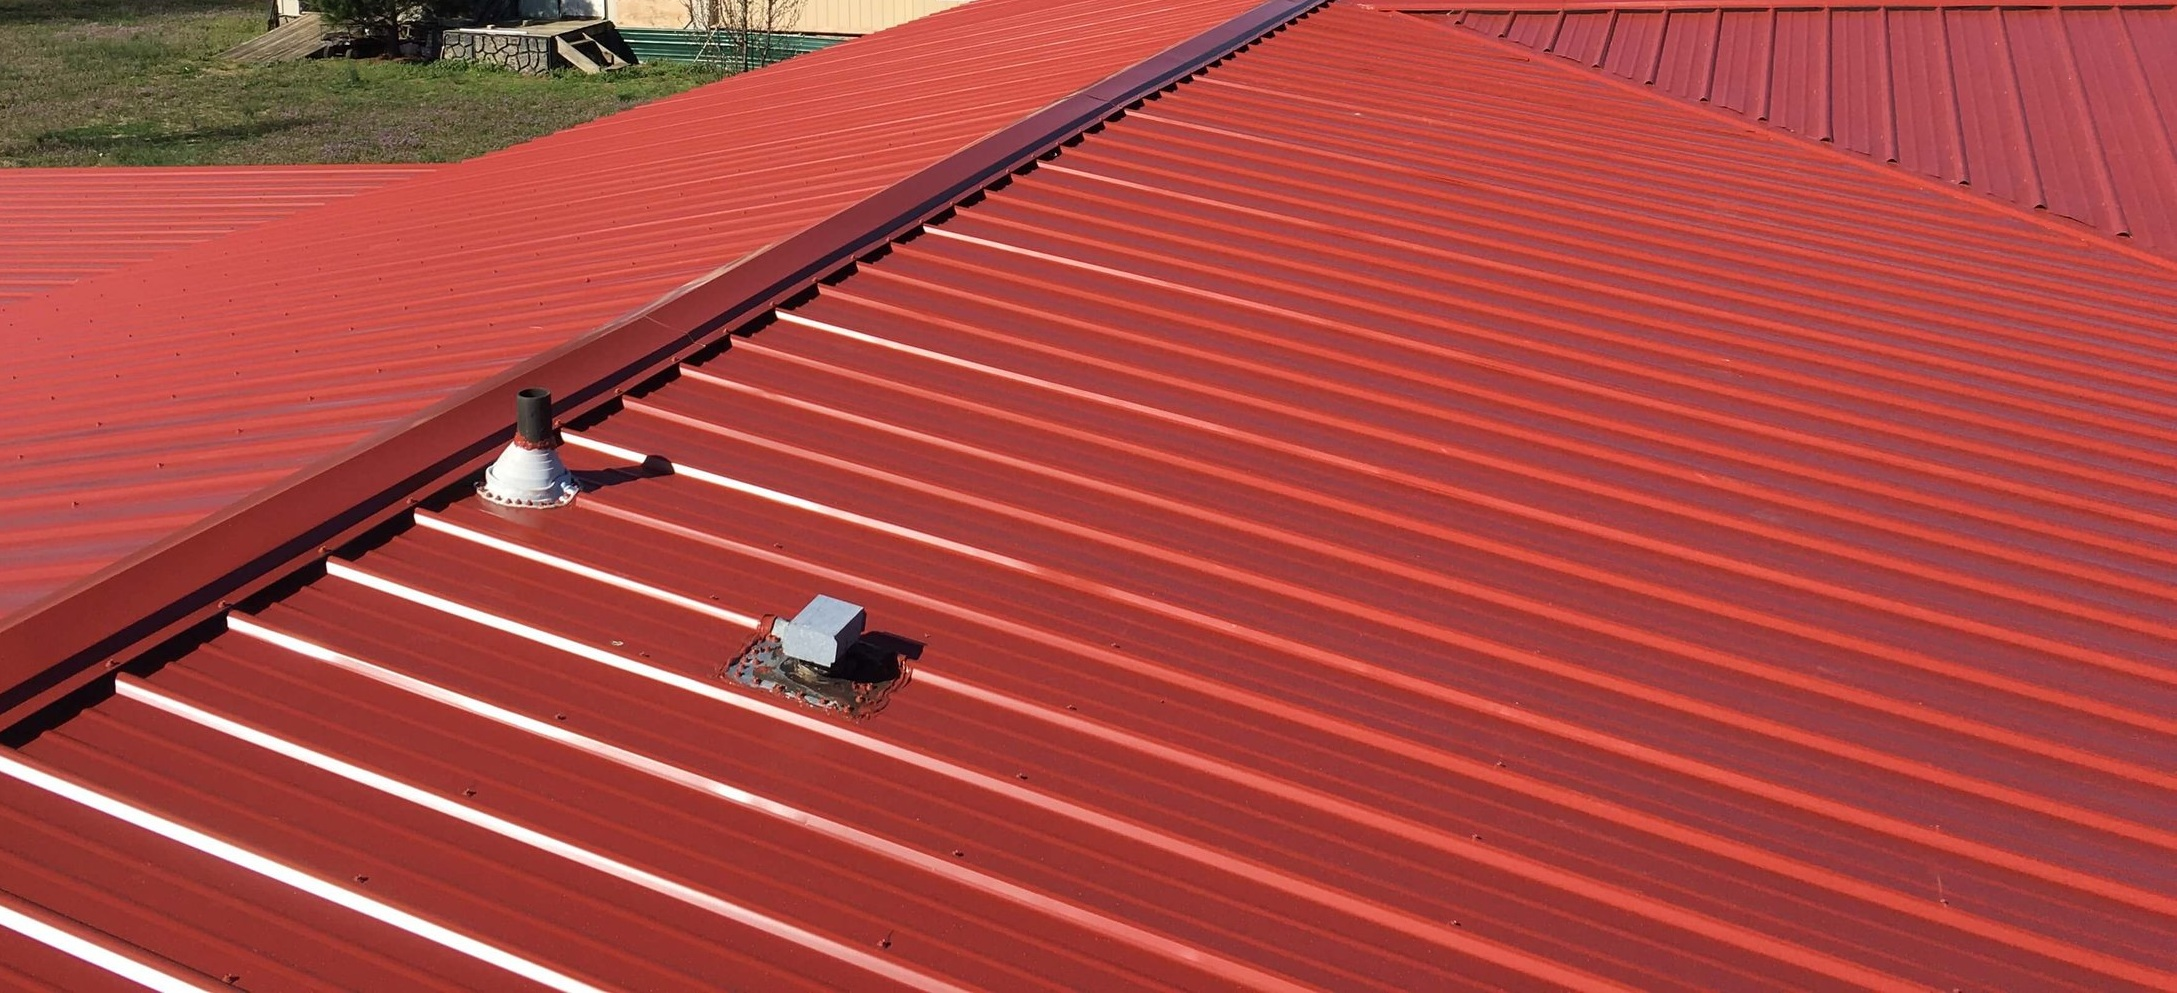 metal-roof-red-metal-roof-roofing-63532.jpg